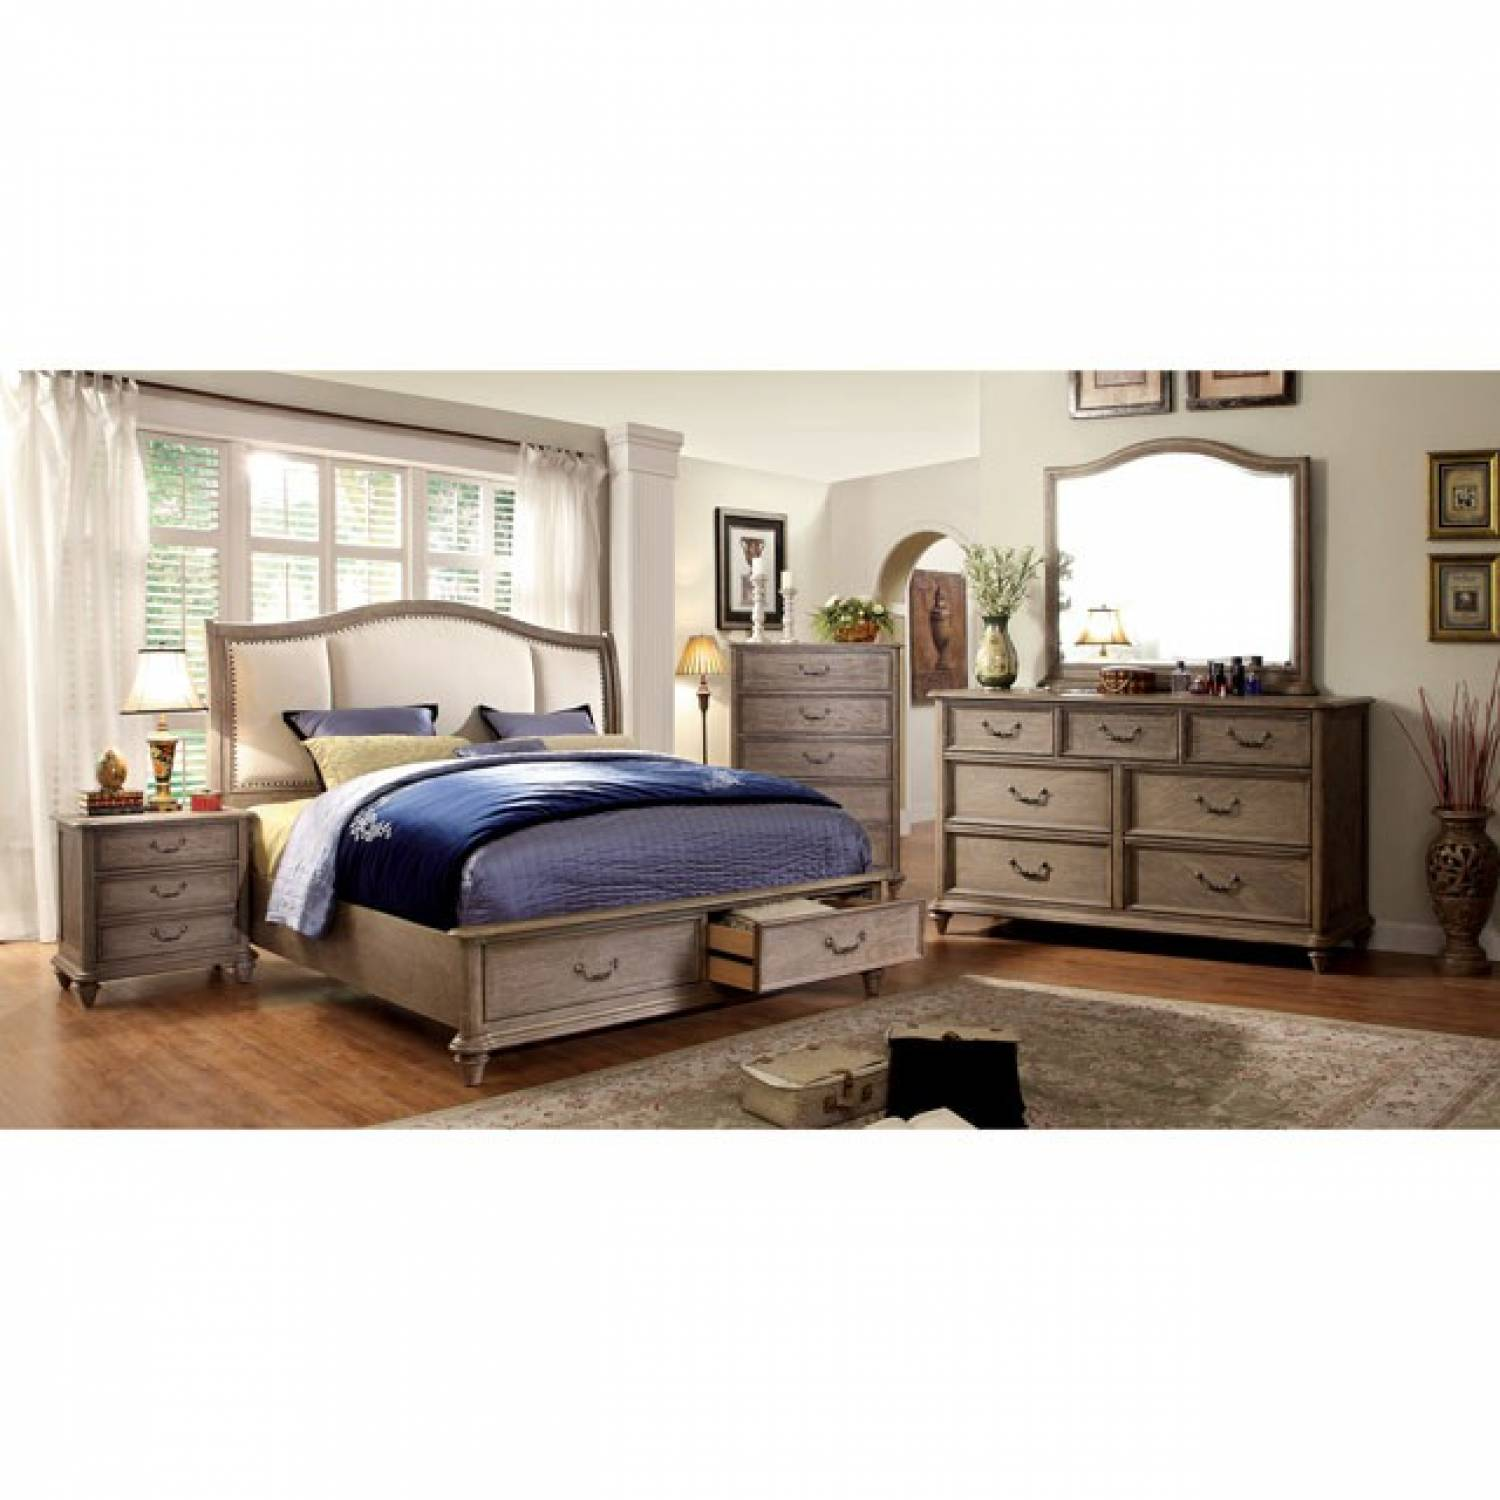 BELGRADE I 5 PC SETS (QUEEN BED + DRESSER + MIRROR + NIGHT